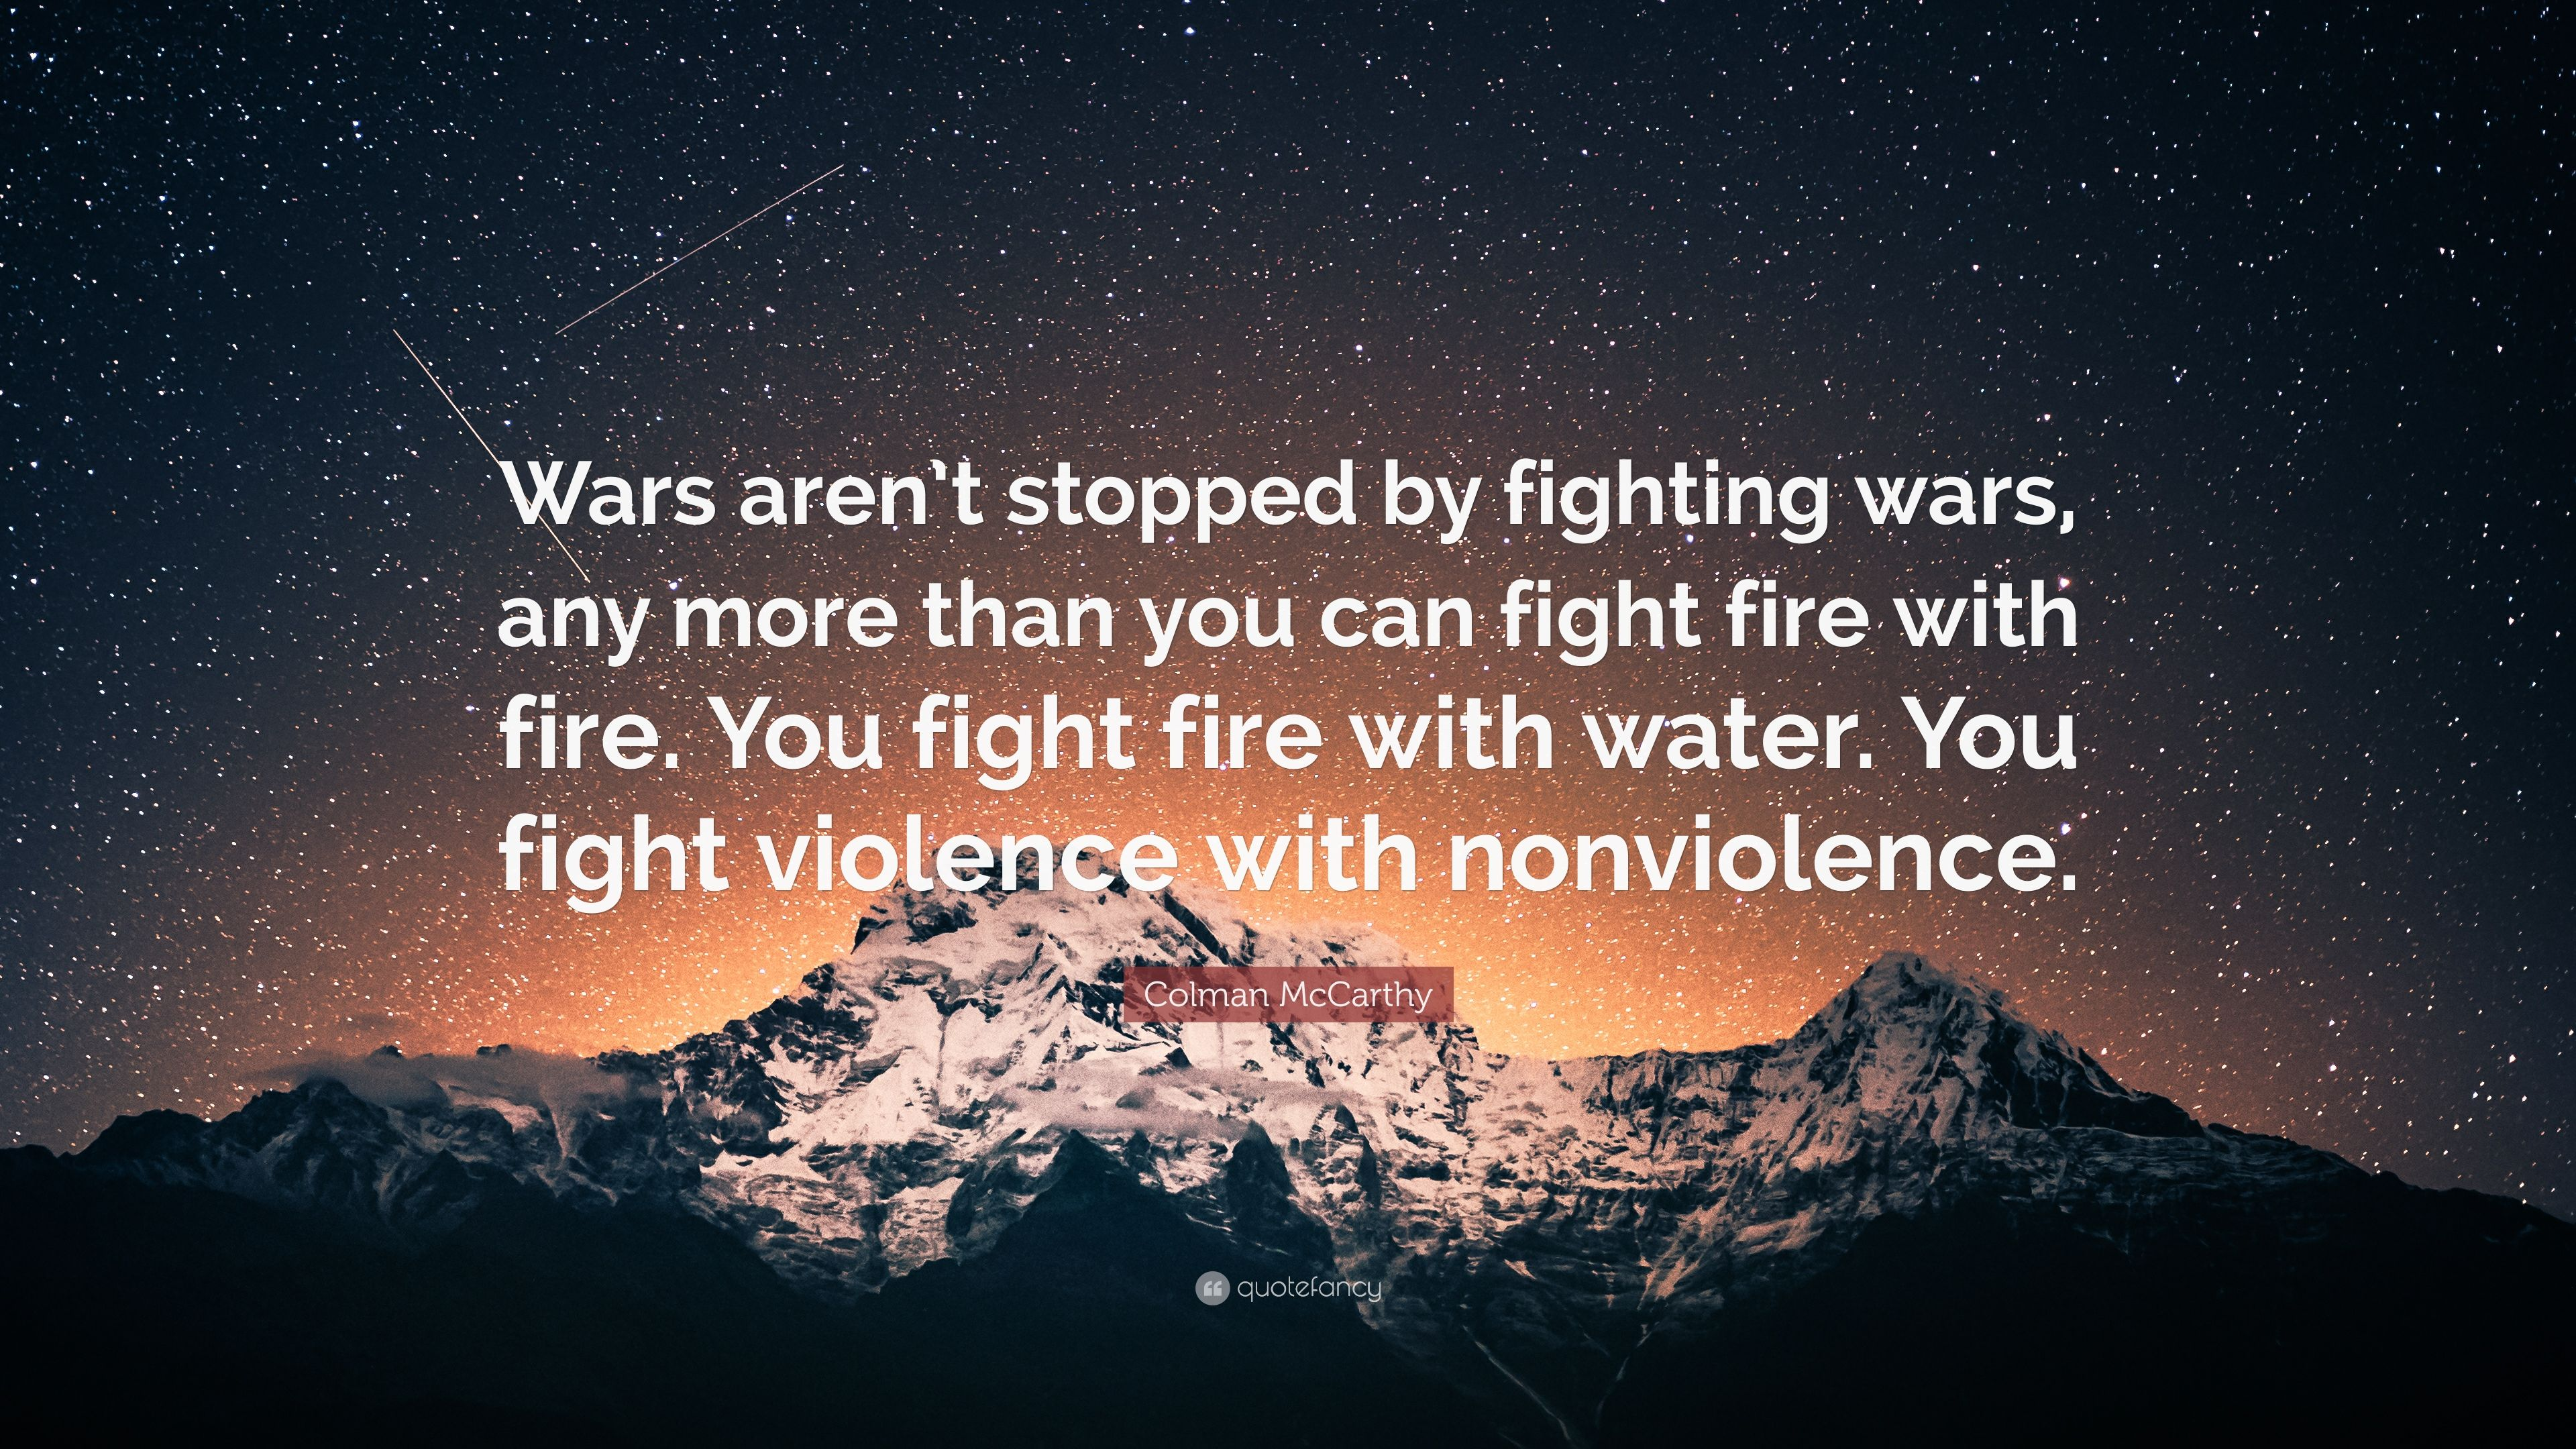 Colman Mccarthy Quote Wars Aren T Stopped By Fighting Wars Any More Than You Can Fight Fire With Fire You Fight Fire With Water You Fight V 7 Wallpapers Quotefancy